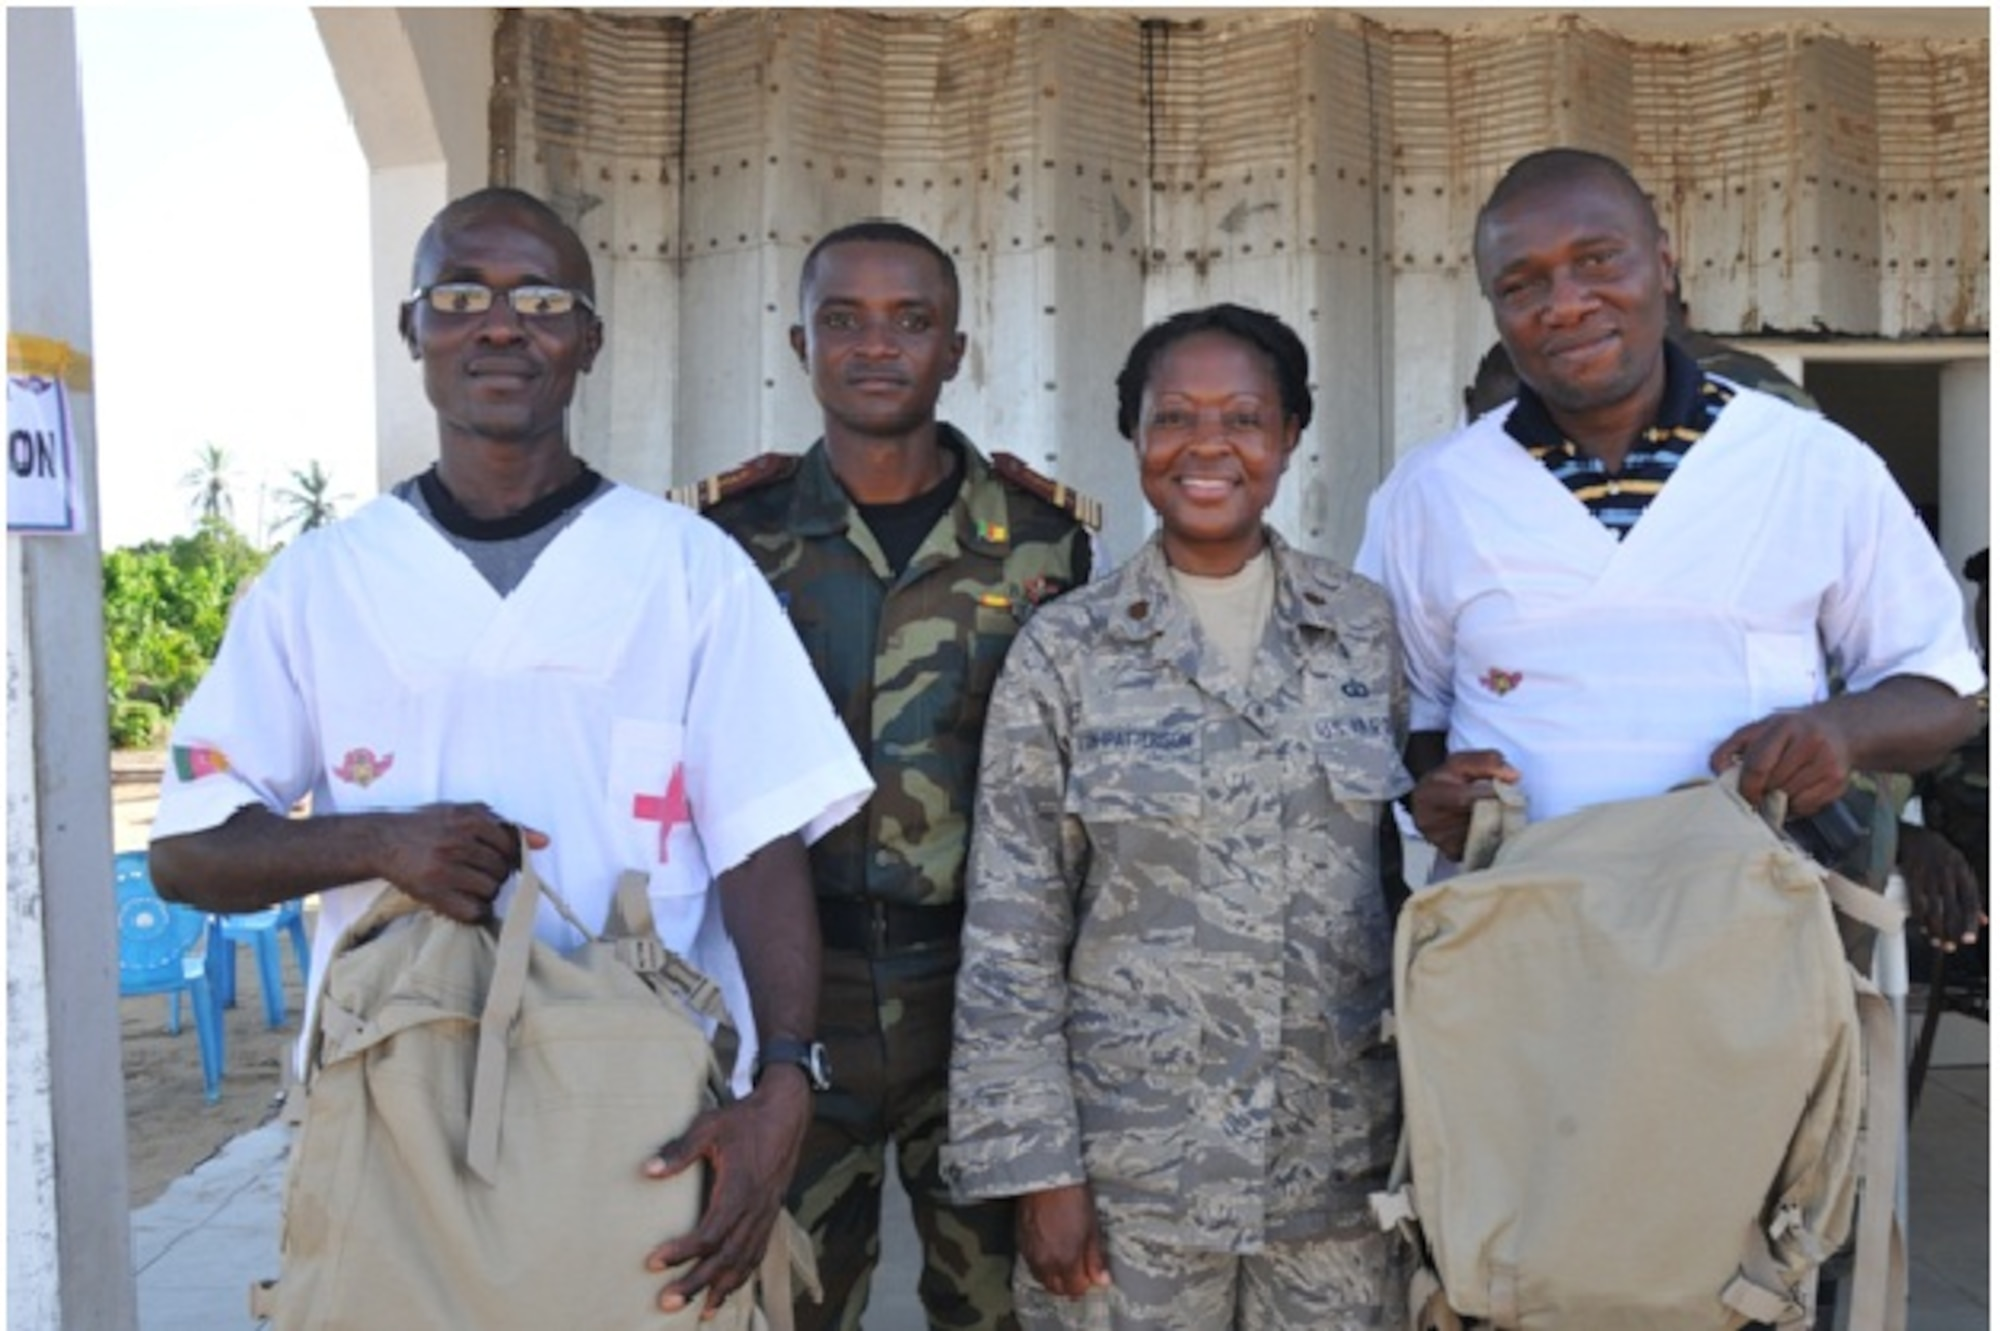 Maj Angelique Vann-Patterson, U.S. Air Forces in Europe - Air Forces Africa international health specialist, with Cameroonian army officer and civilian Health Care Workers during humanitarian civic assistance activities in Manouka, Cameroon. (Courtesy photo)